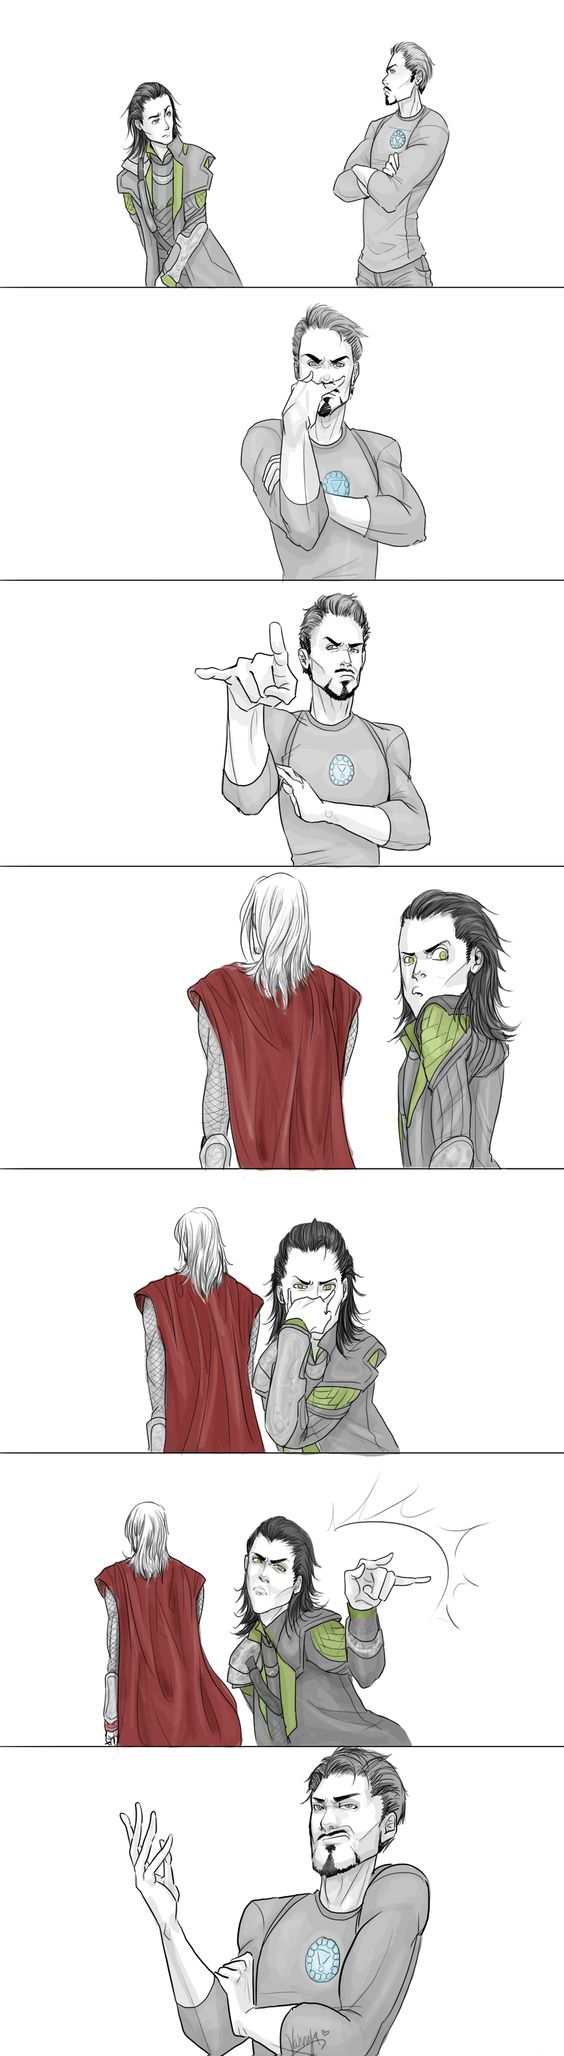 Loki and Tony's Face Off, lololol.